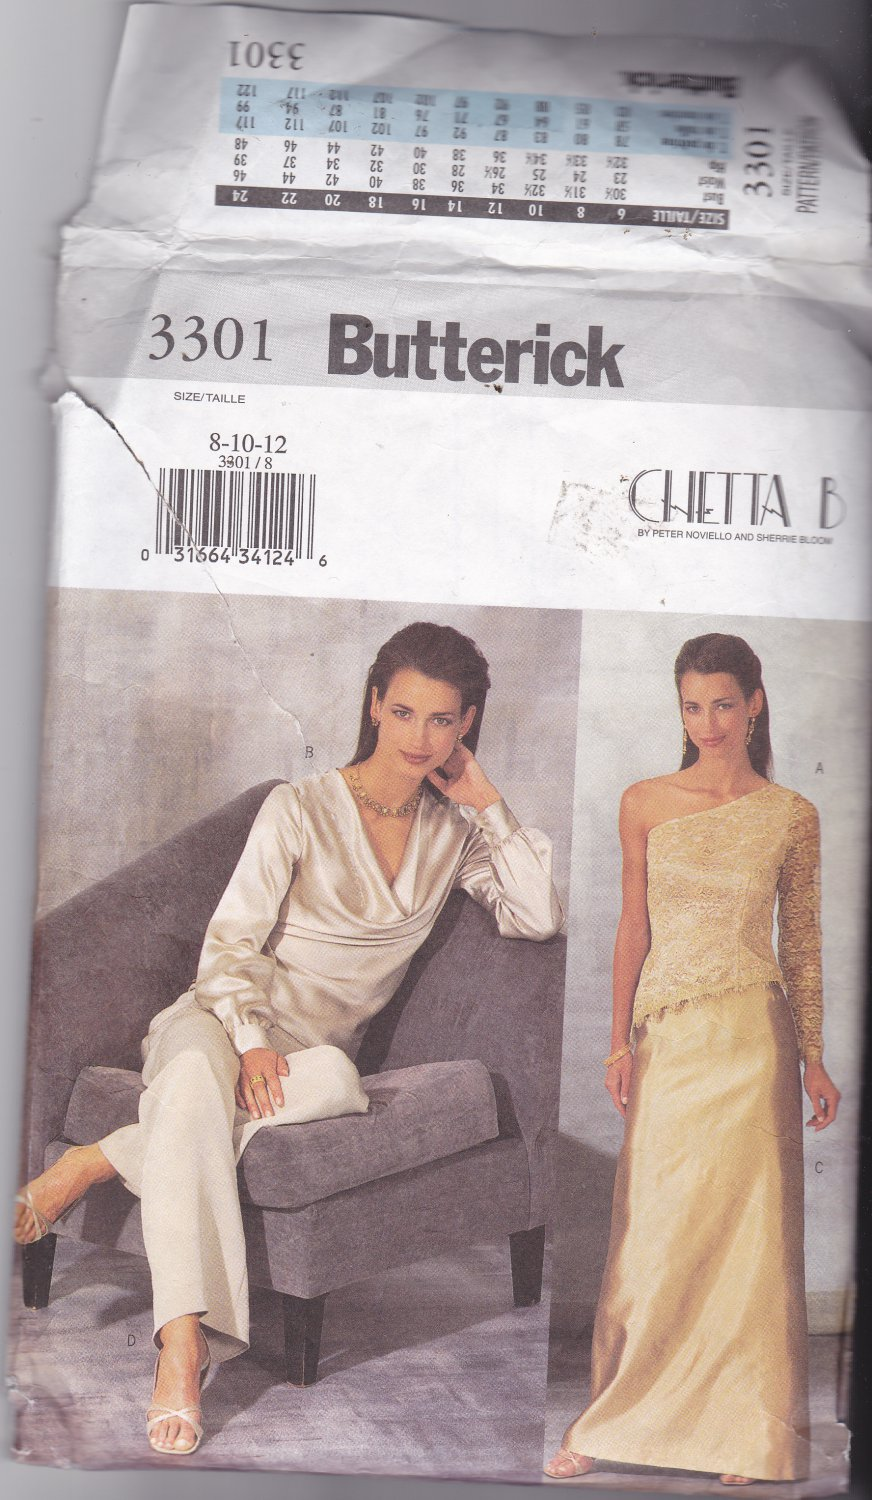 Butterick 3301 size 8 10 12 Chetta B, may be missing pieces